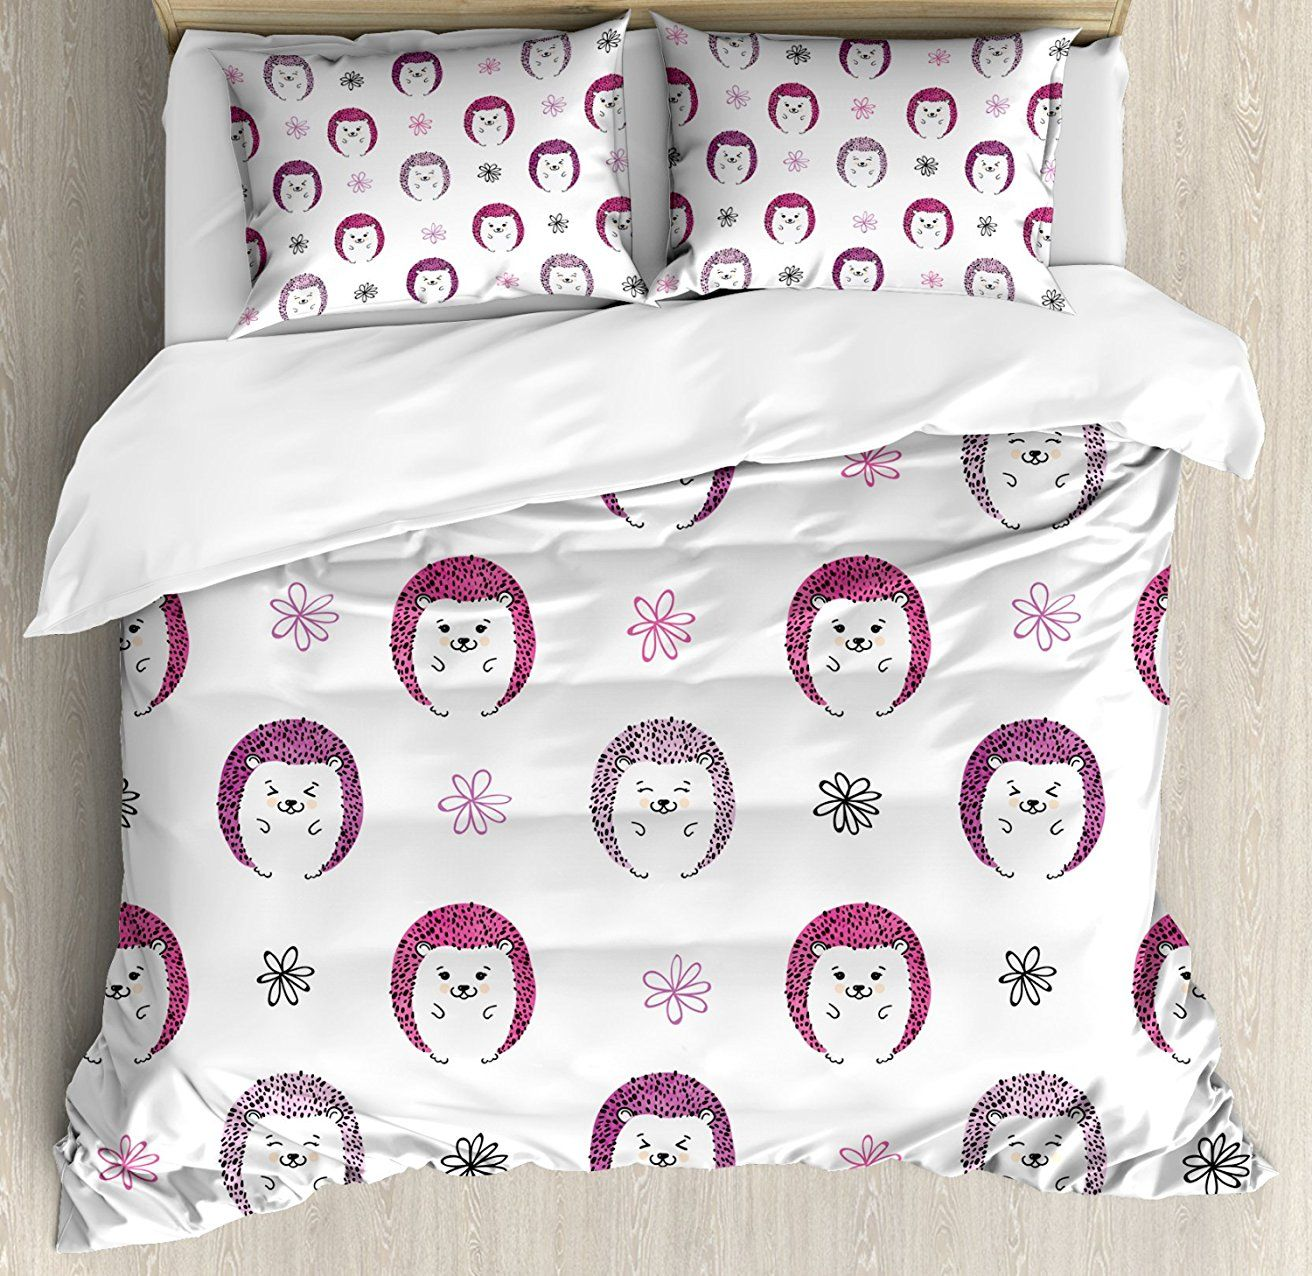 Hedgehog Duvet Cover Set , Colorful Spiky Animals with Cute Faces Doodle Flowers Cartoon Style Image, 4 Piece Bedding Set